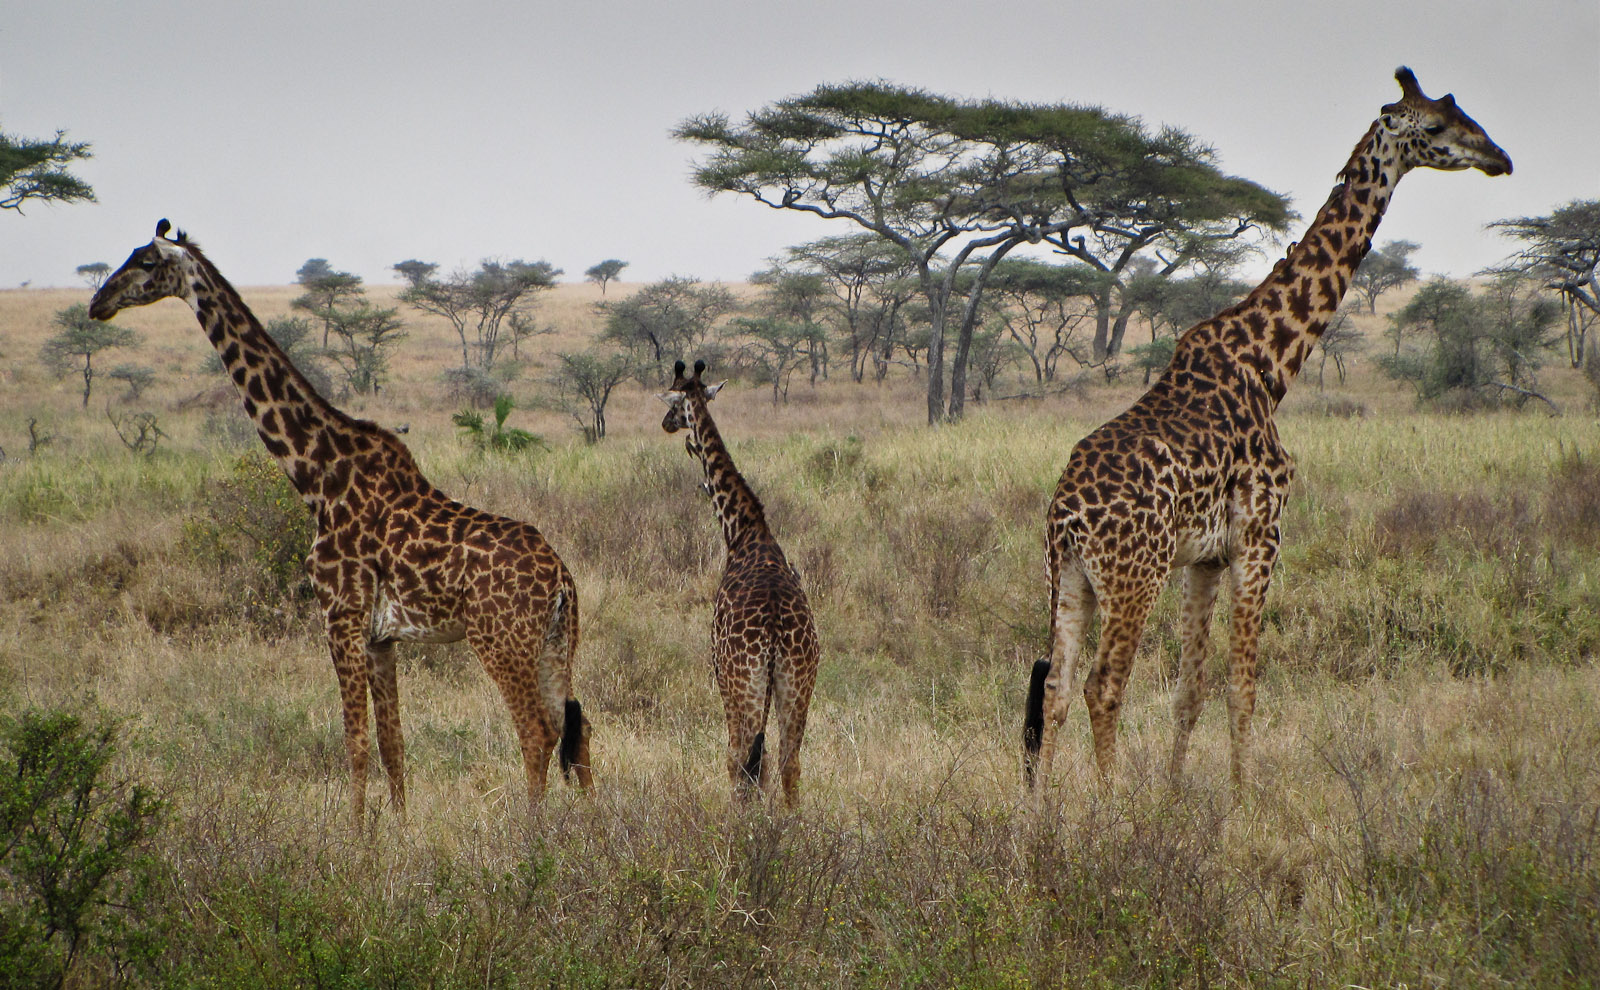 Family of Masai Giraffe (Giraffa camelopardalis tippelskirchi) Keeps Vigilant Watch in Every Directi